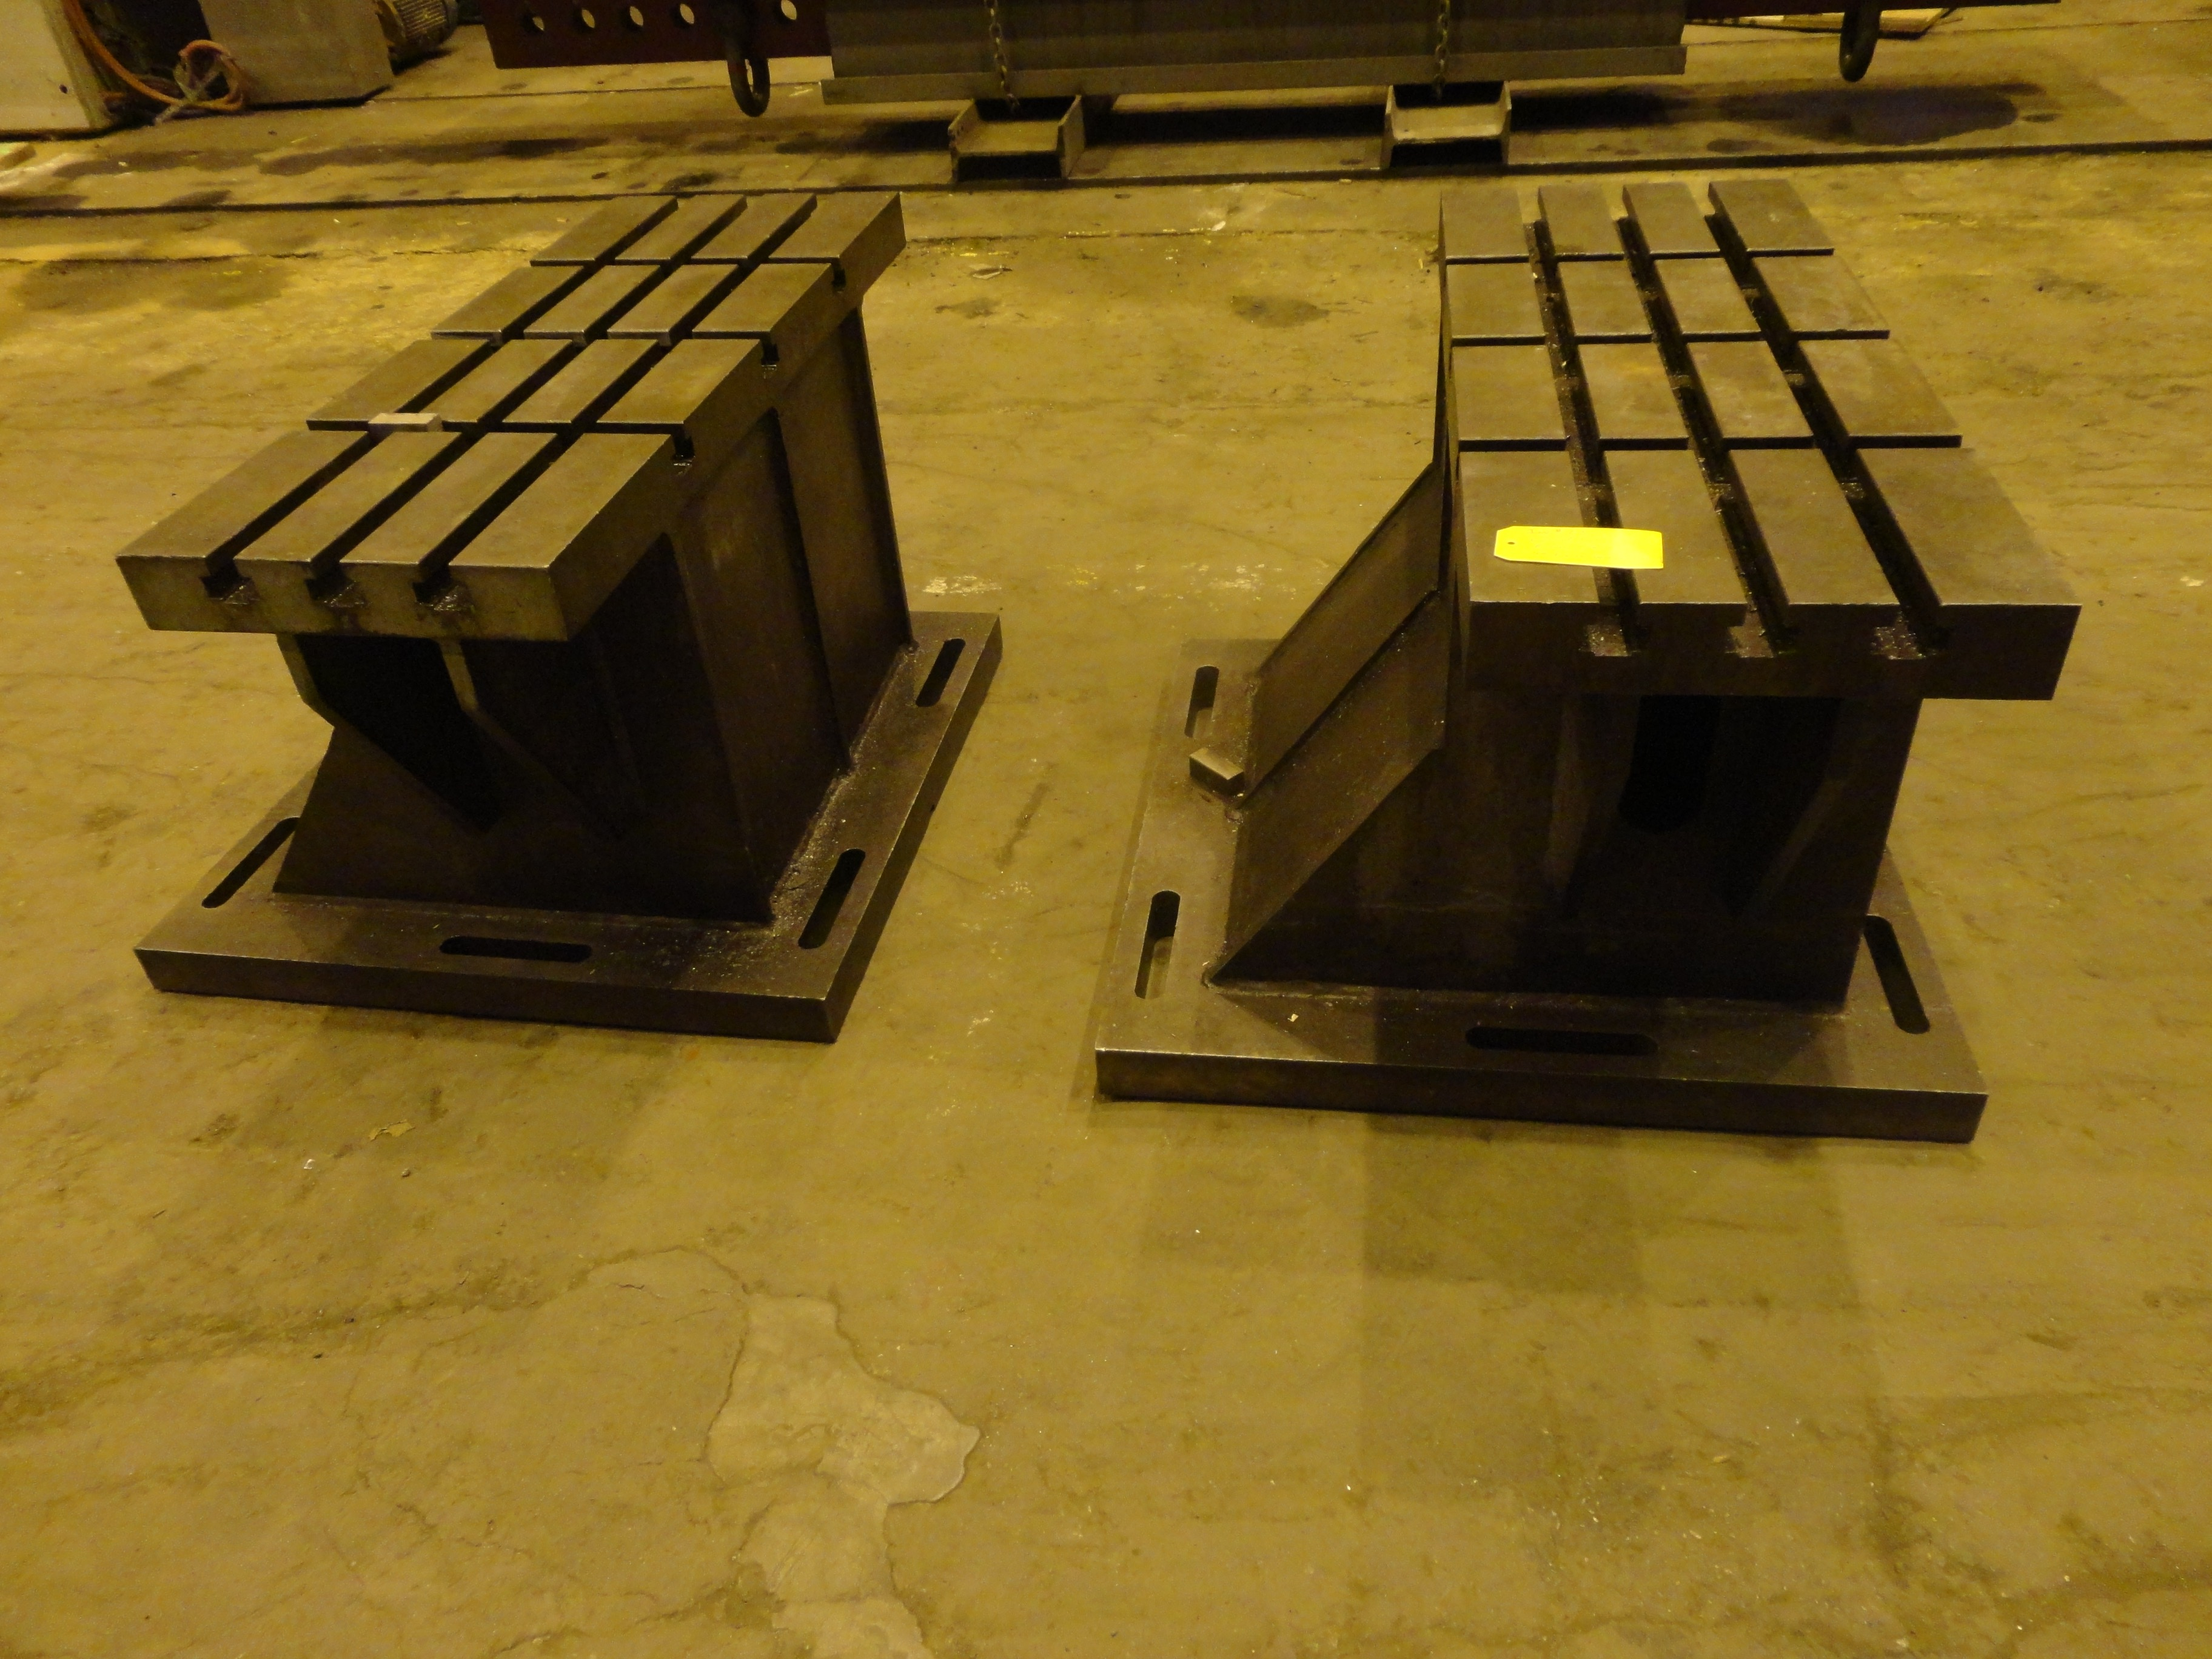 """Set of 2 T-Slotted Riser Blocks Knee Hold Down Plates 42""""L x 16"""" W x 25""""H - Image 4 of 13"""